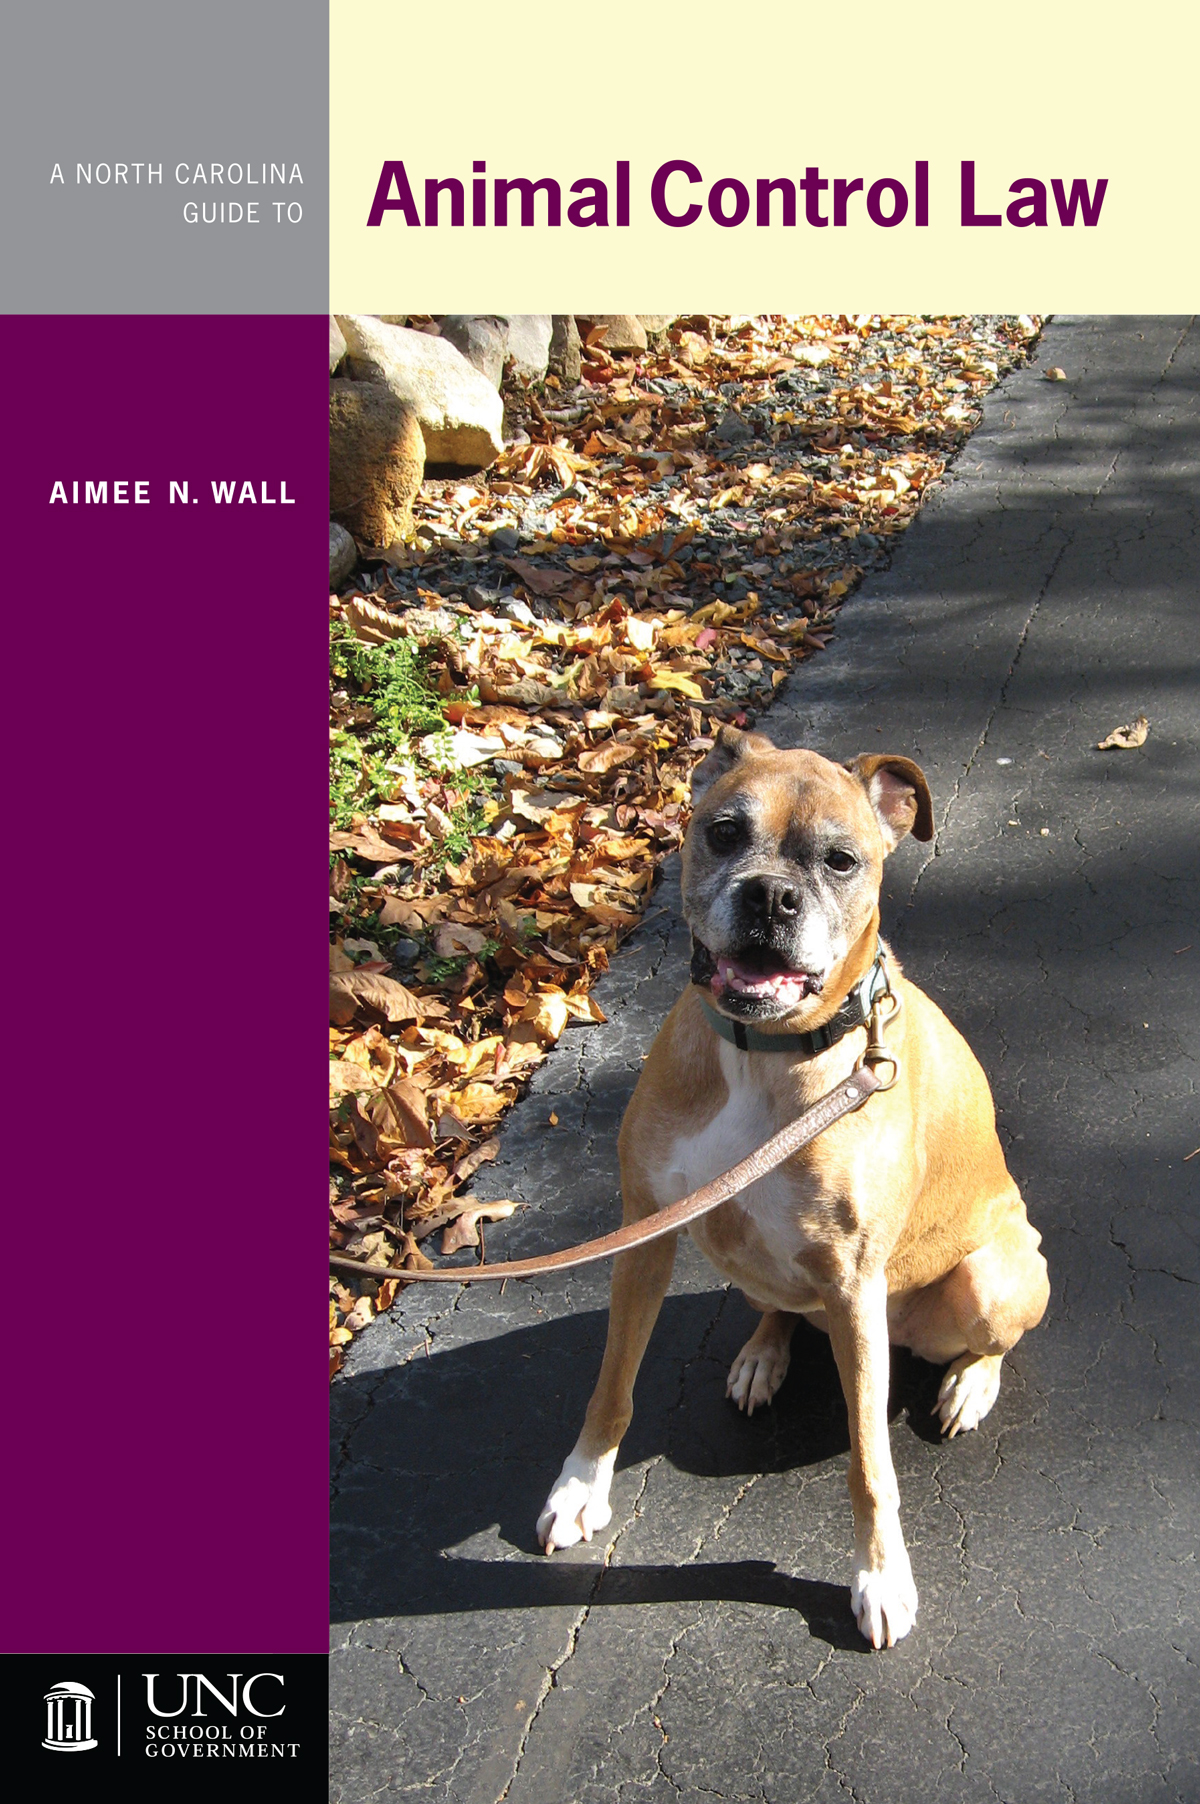 Cover image for North Carolina Guide to Animal Control Law